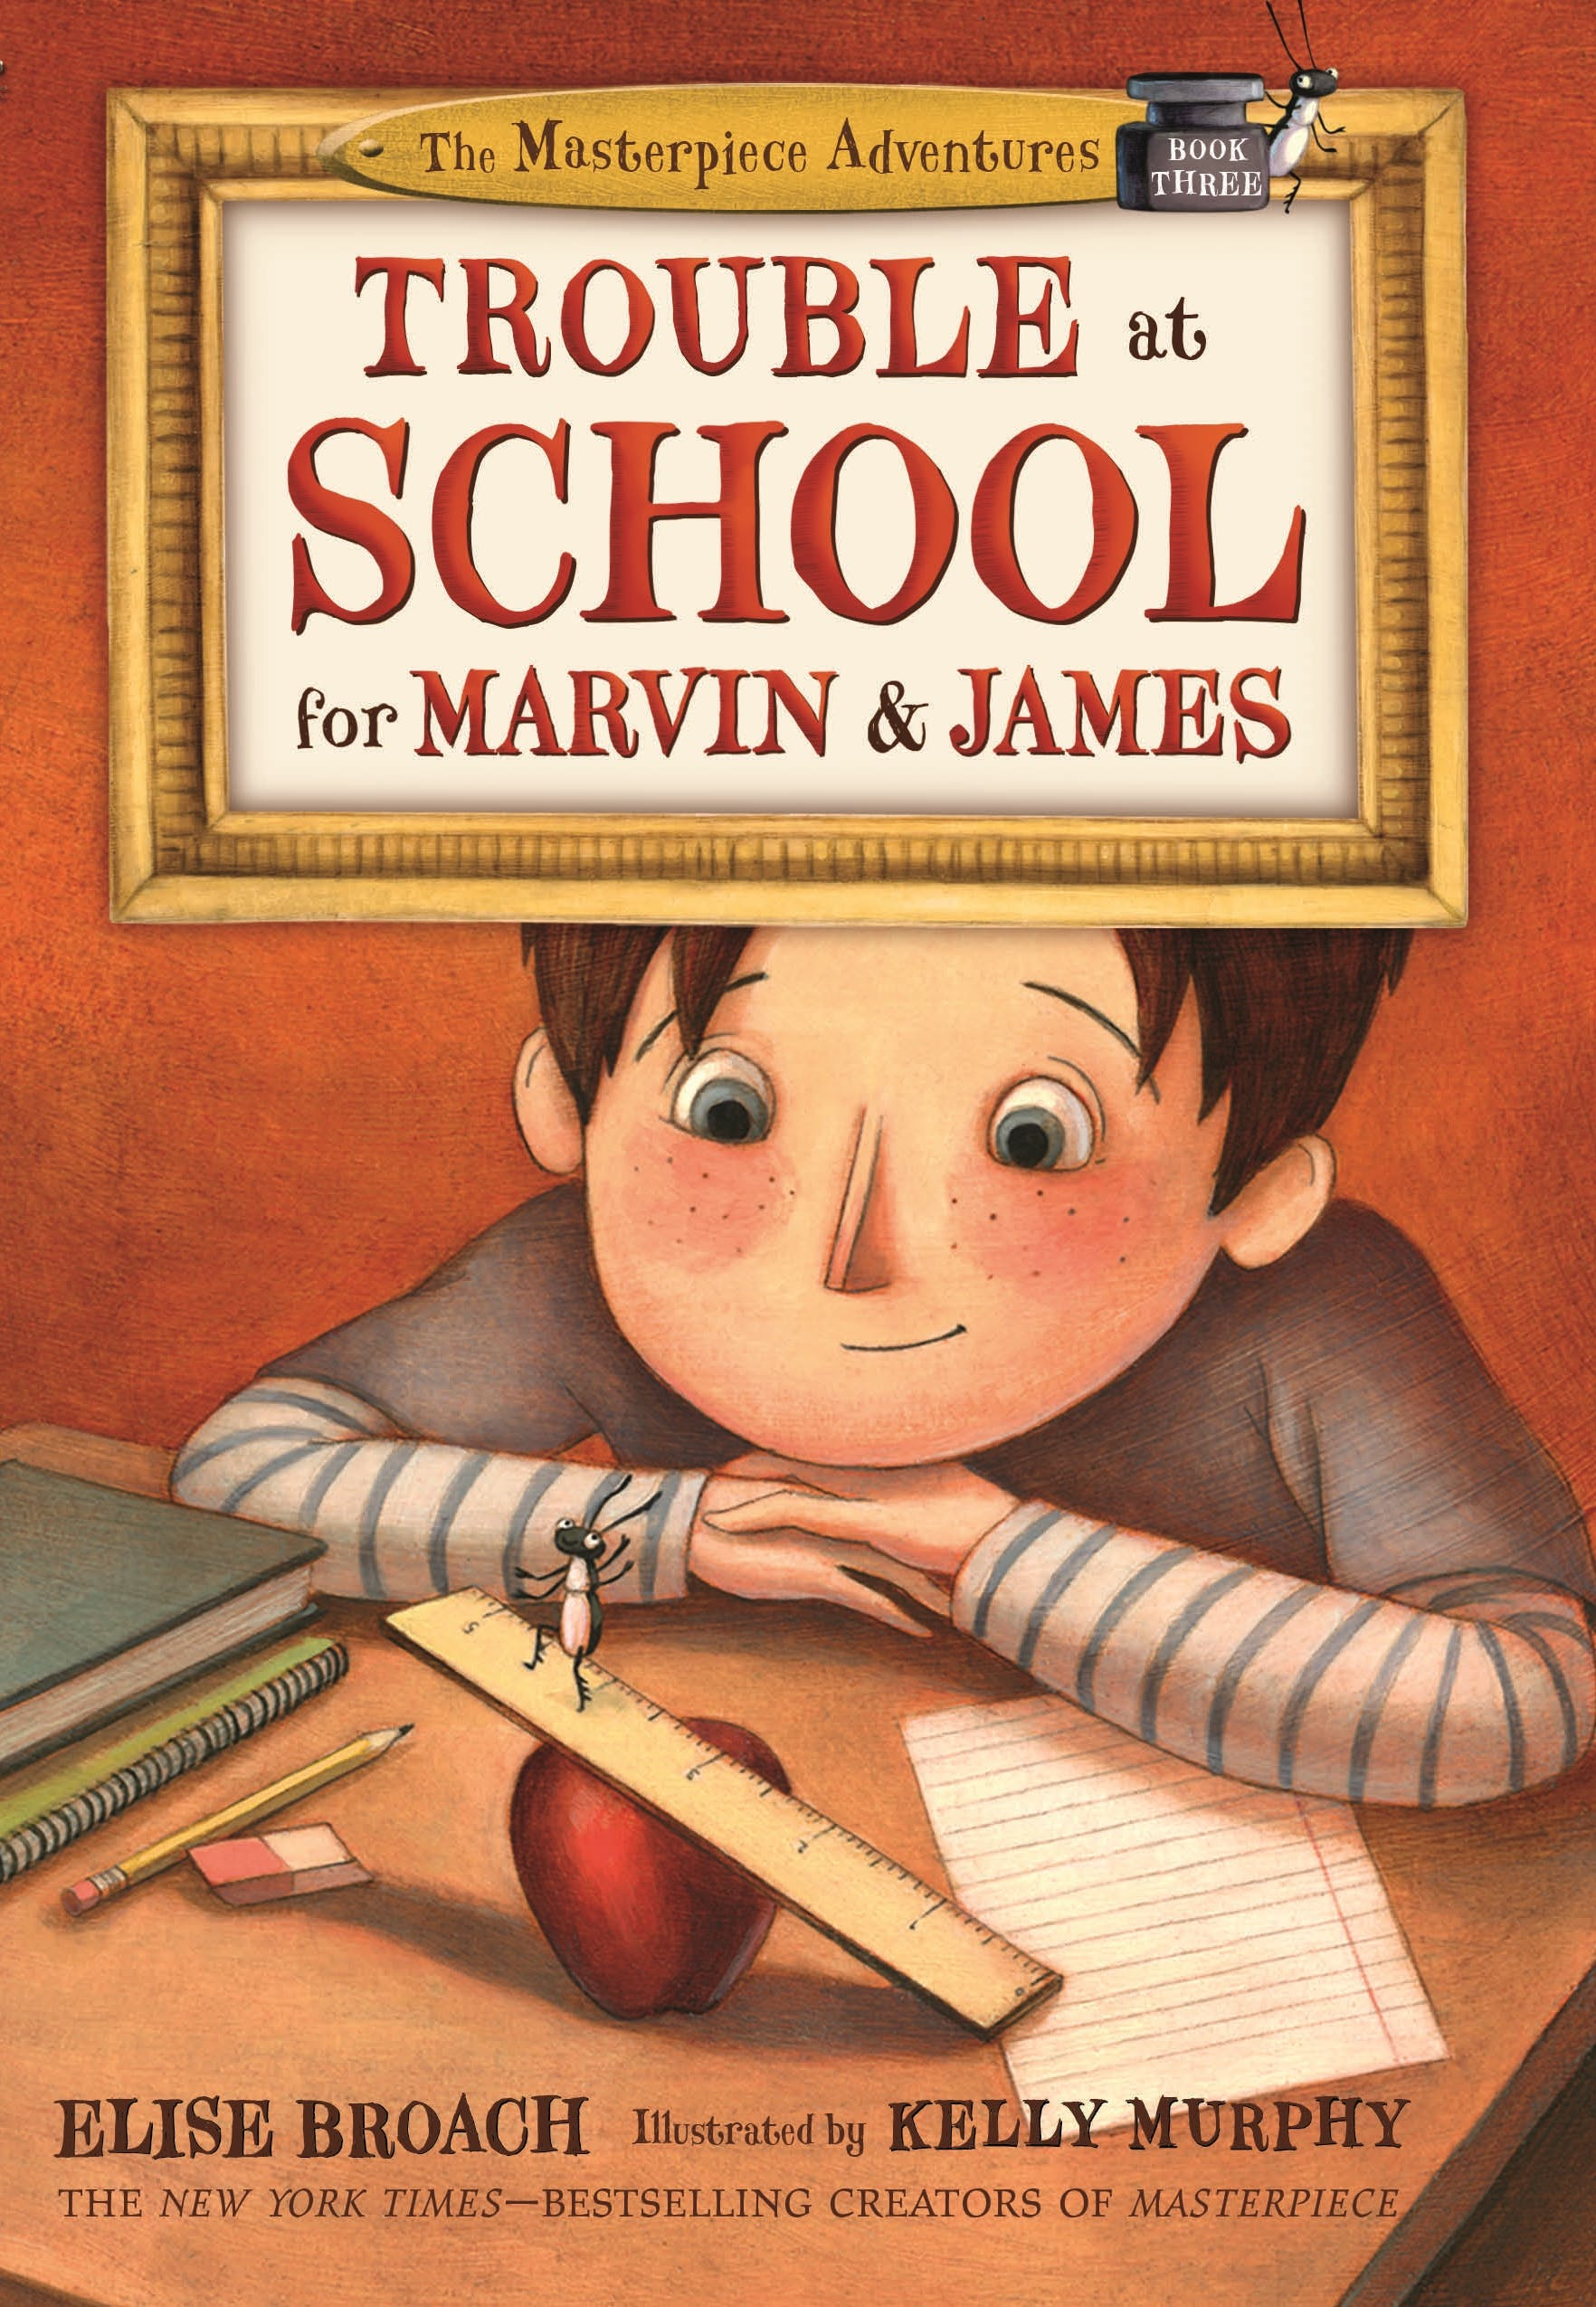 Image of Trouble at School for Marvin & James